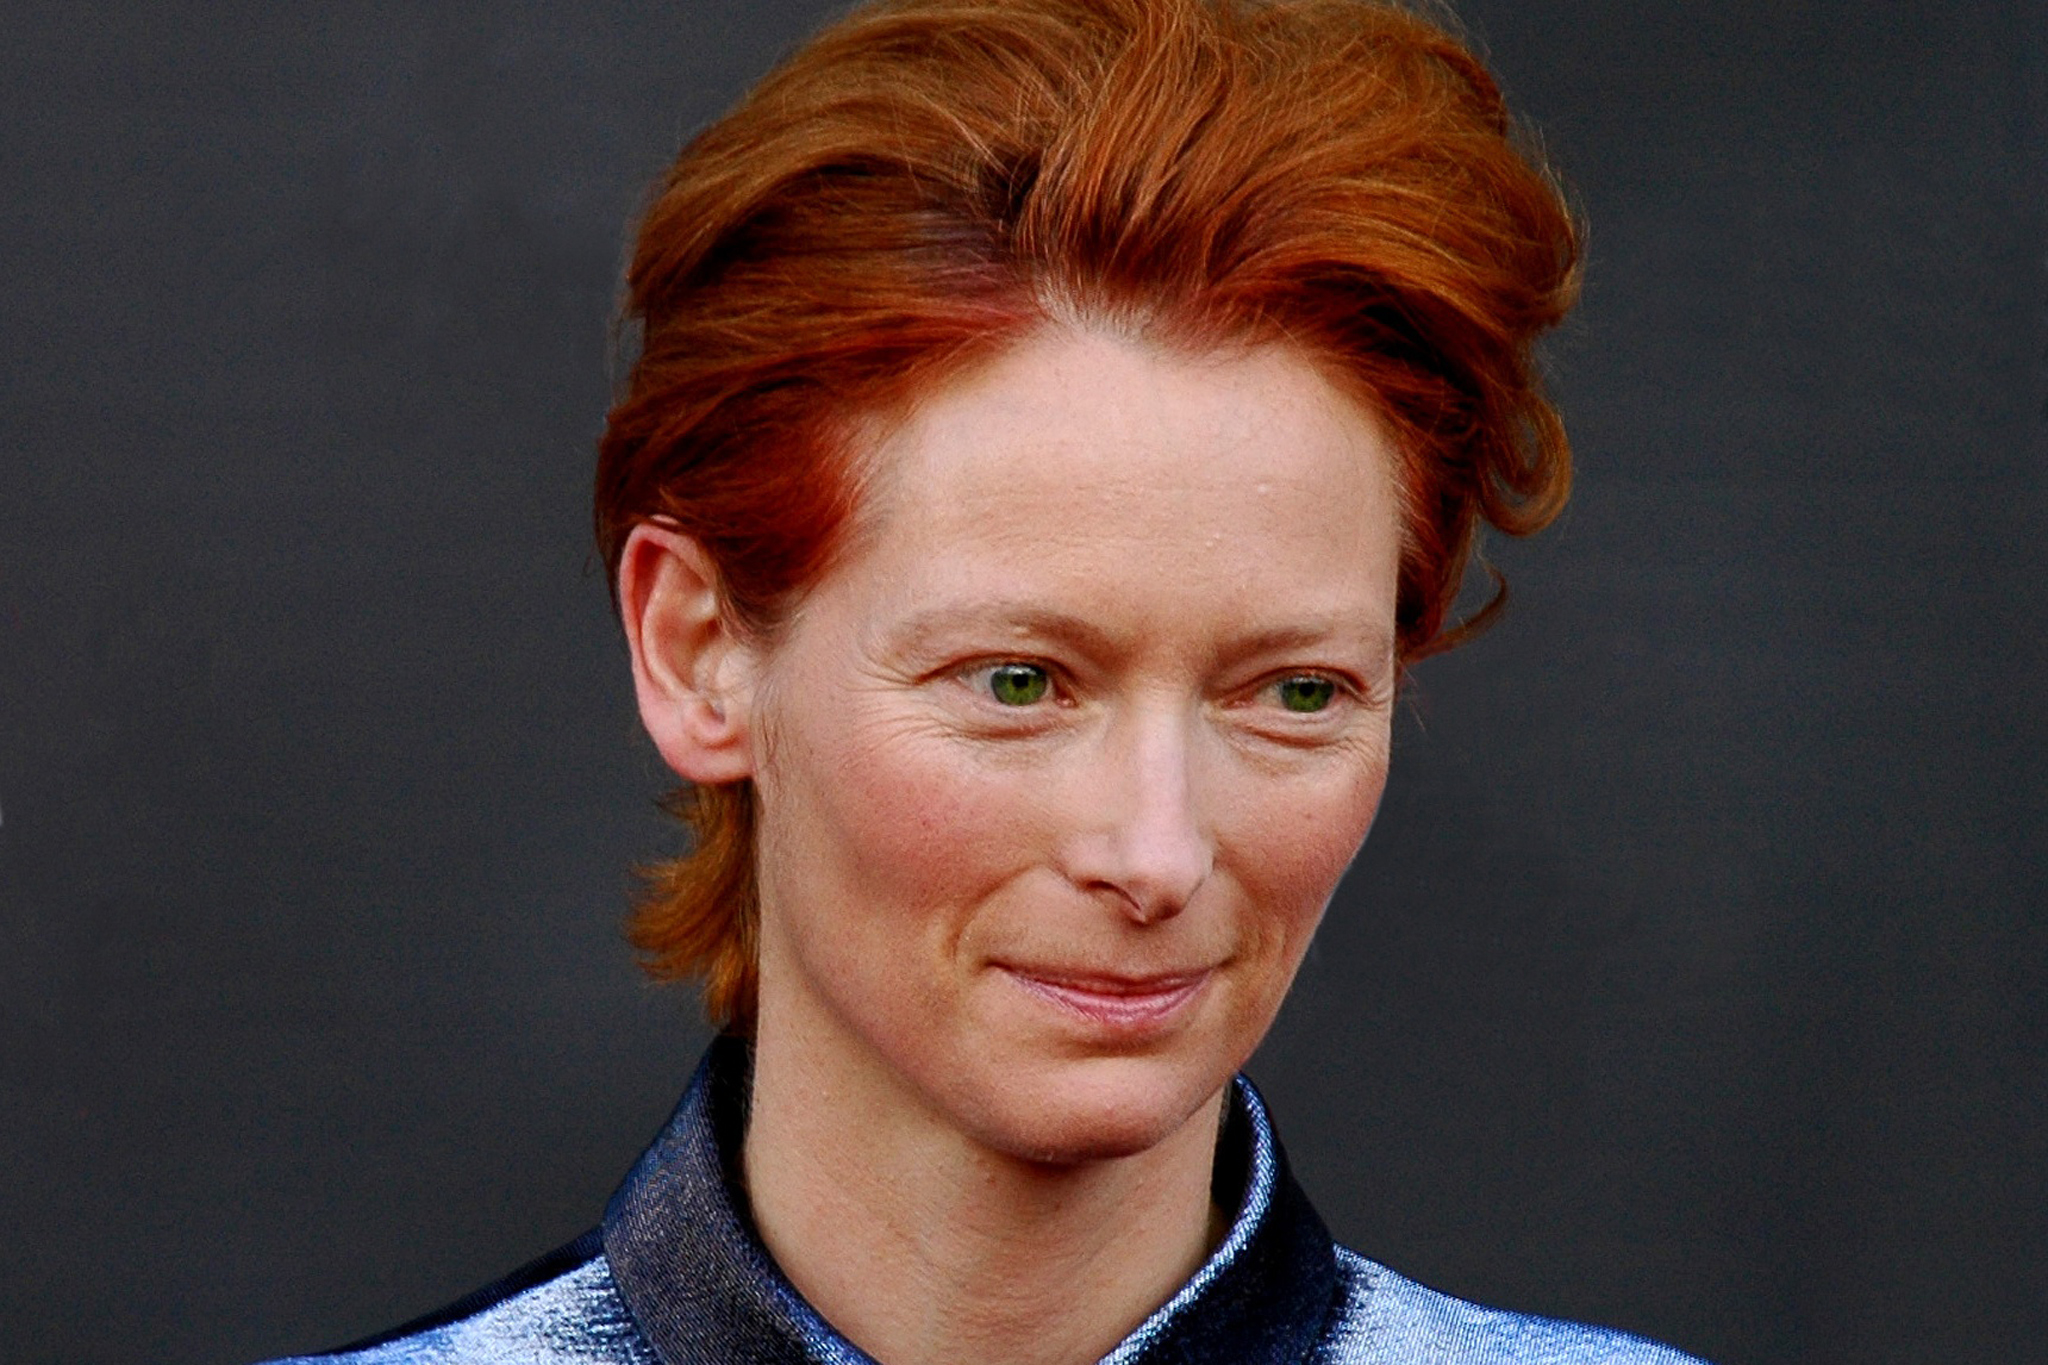 Tilda Swinton (Climate of Change, 2010)